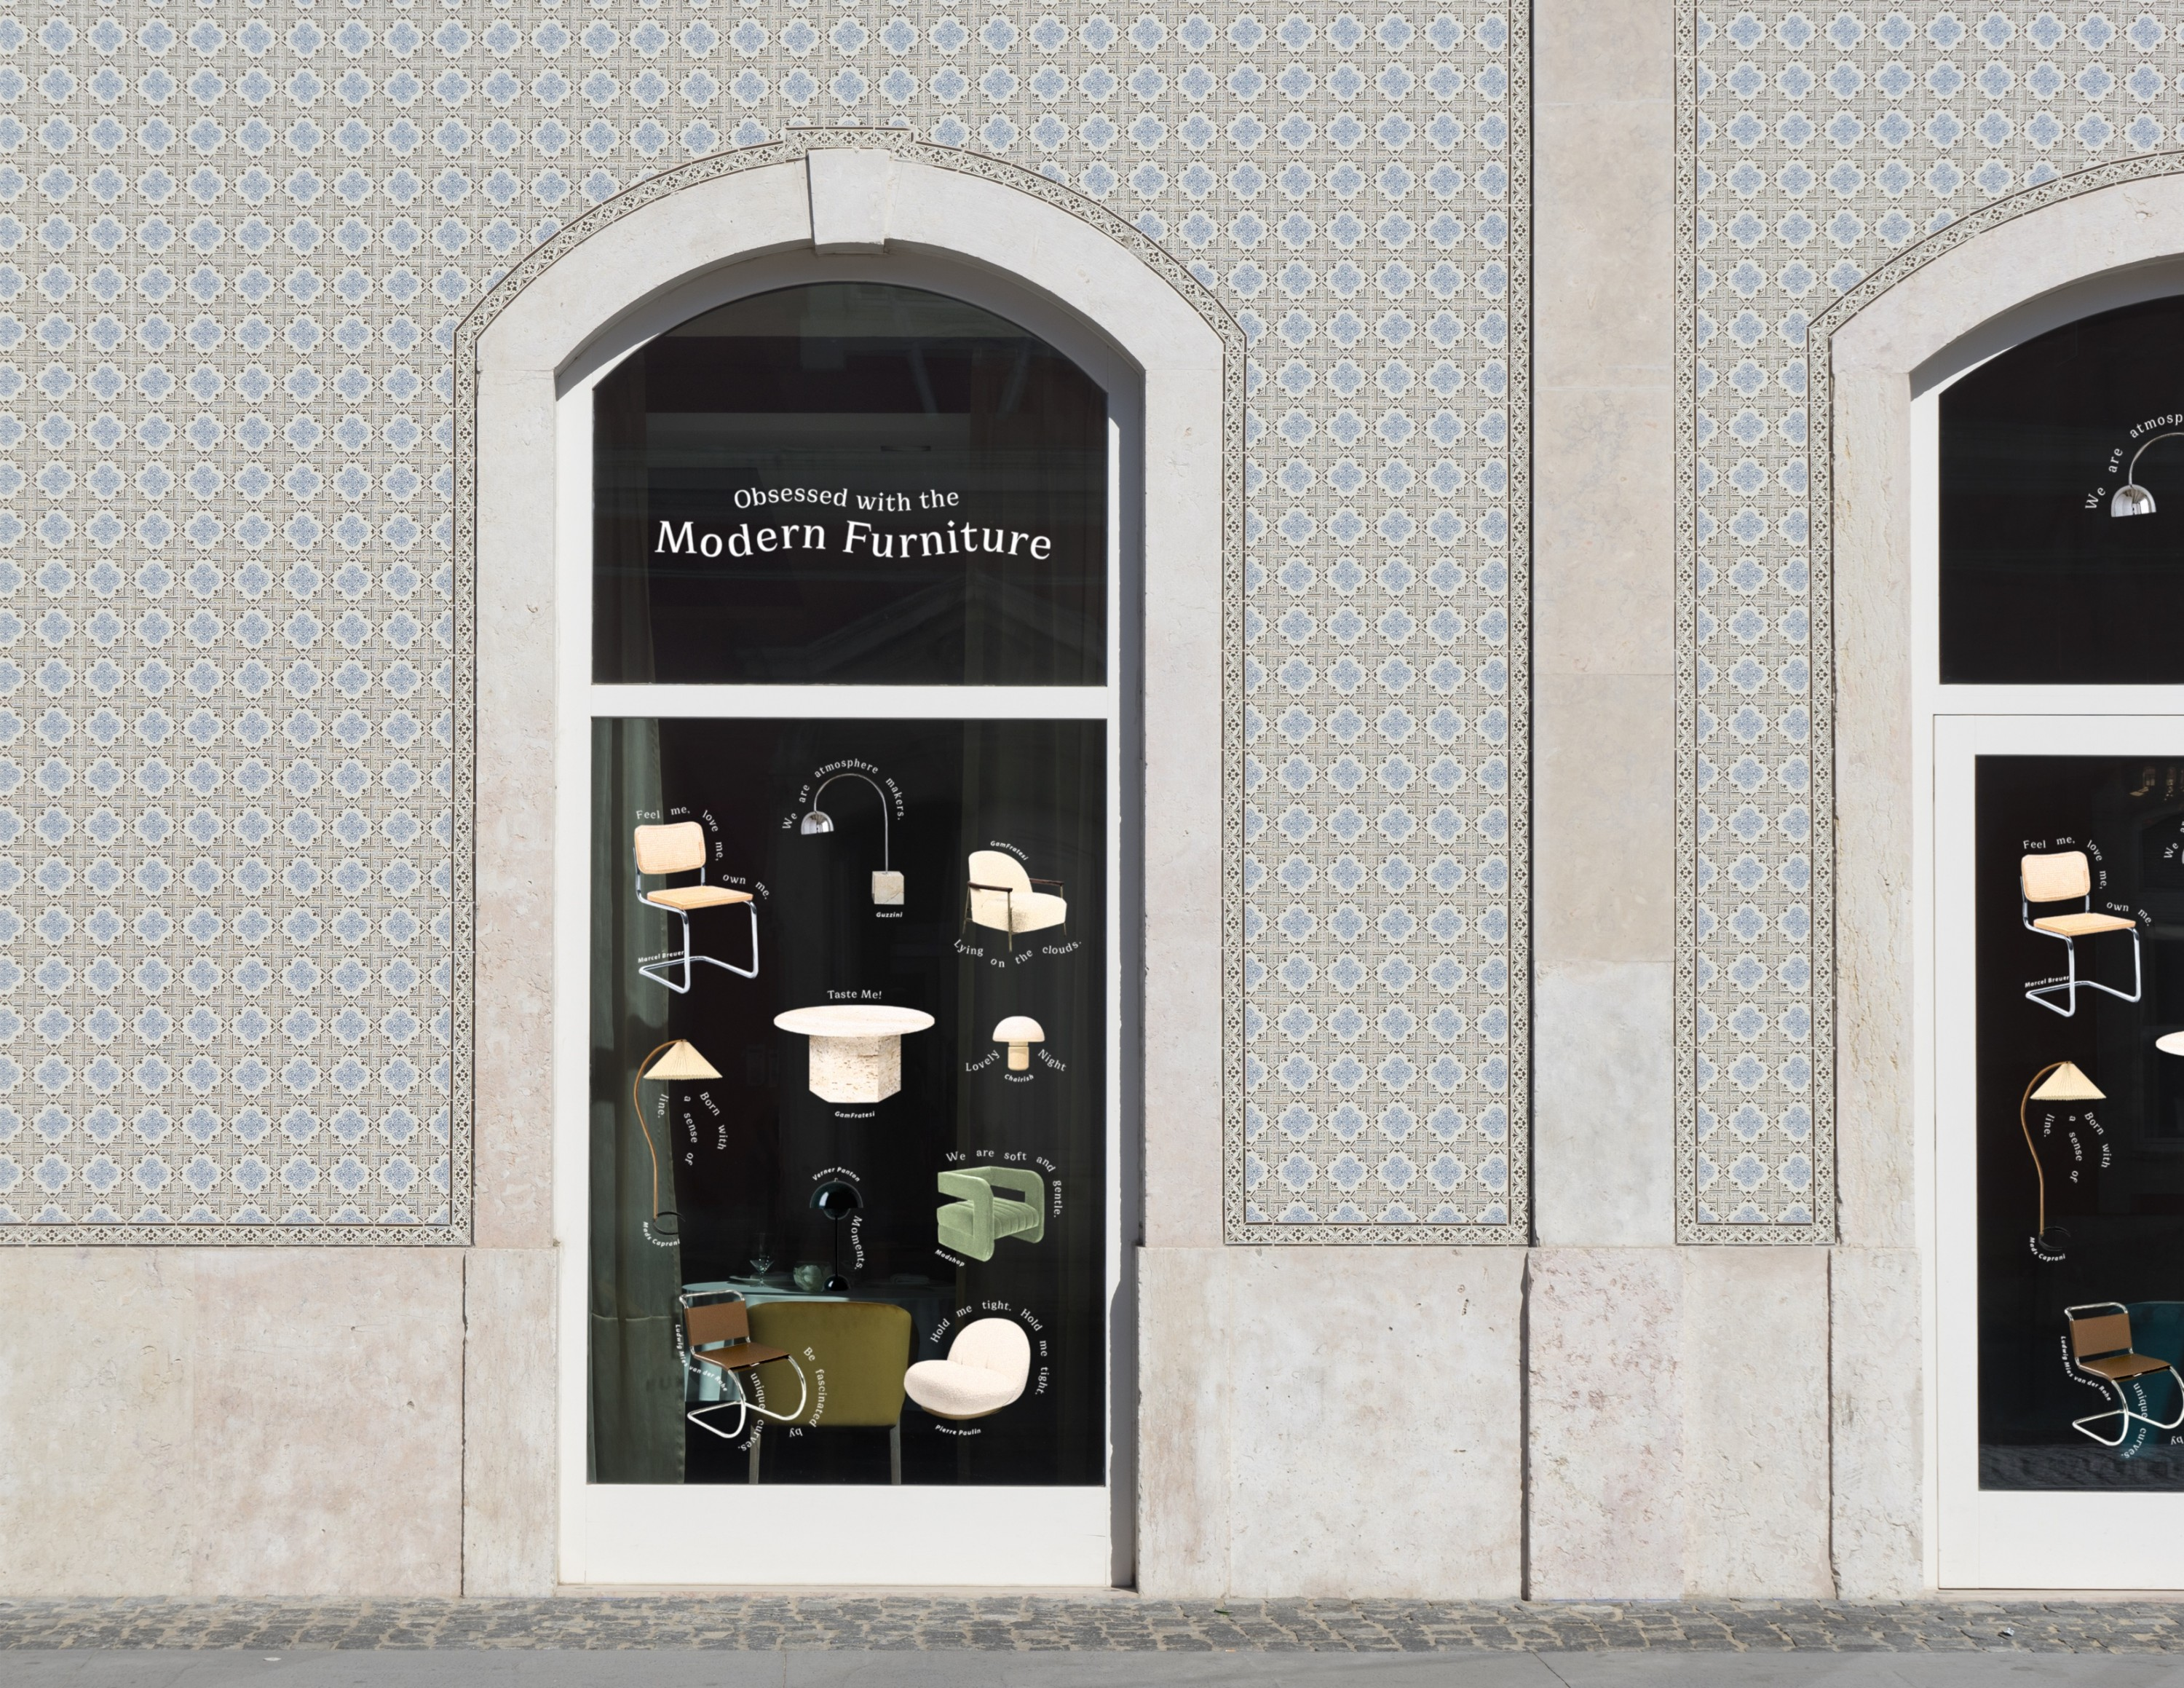 This is an image showing the furniture illustration on the window.